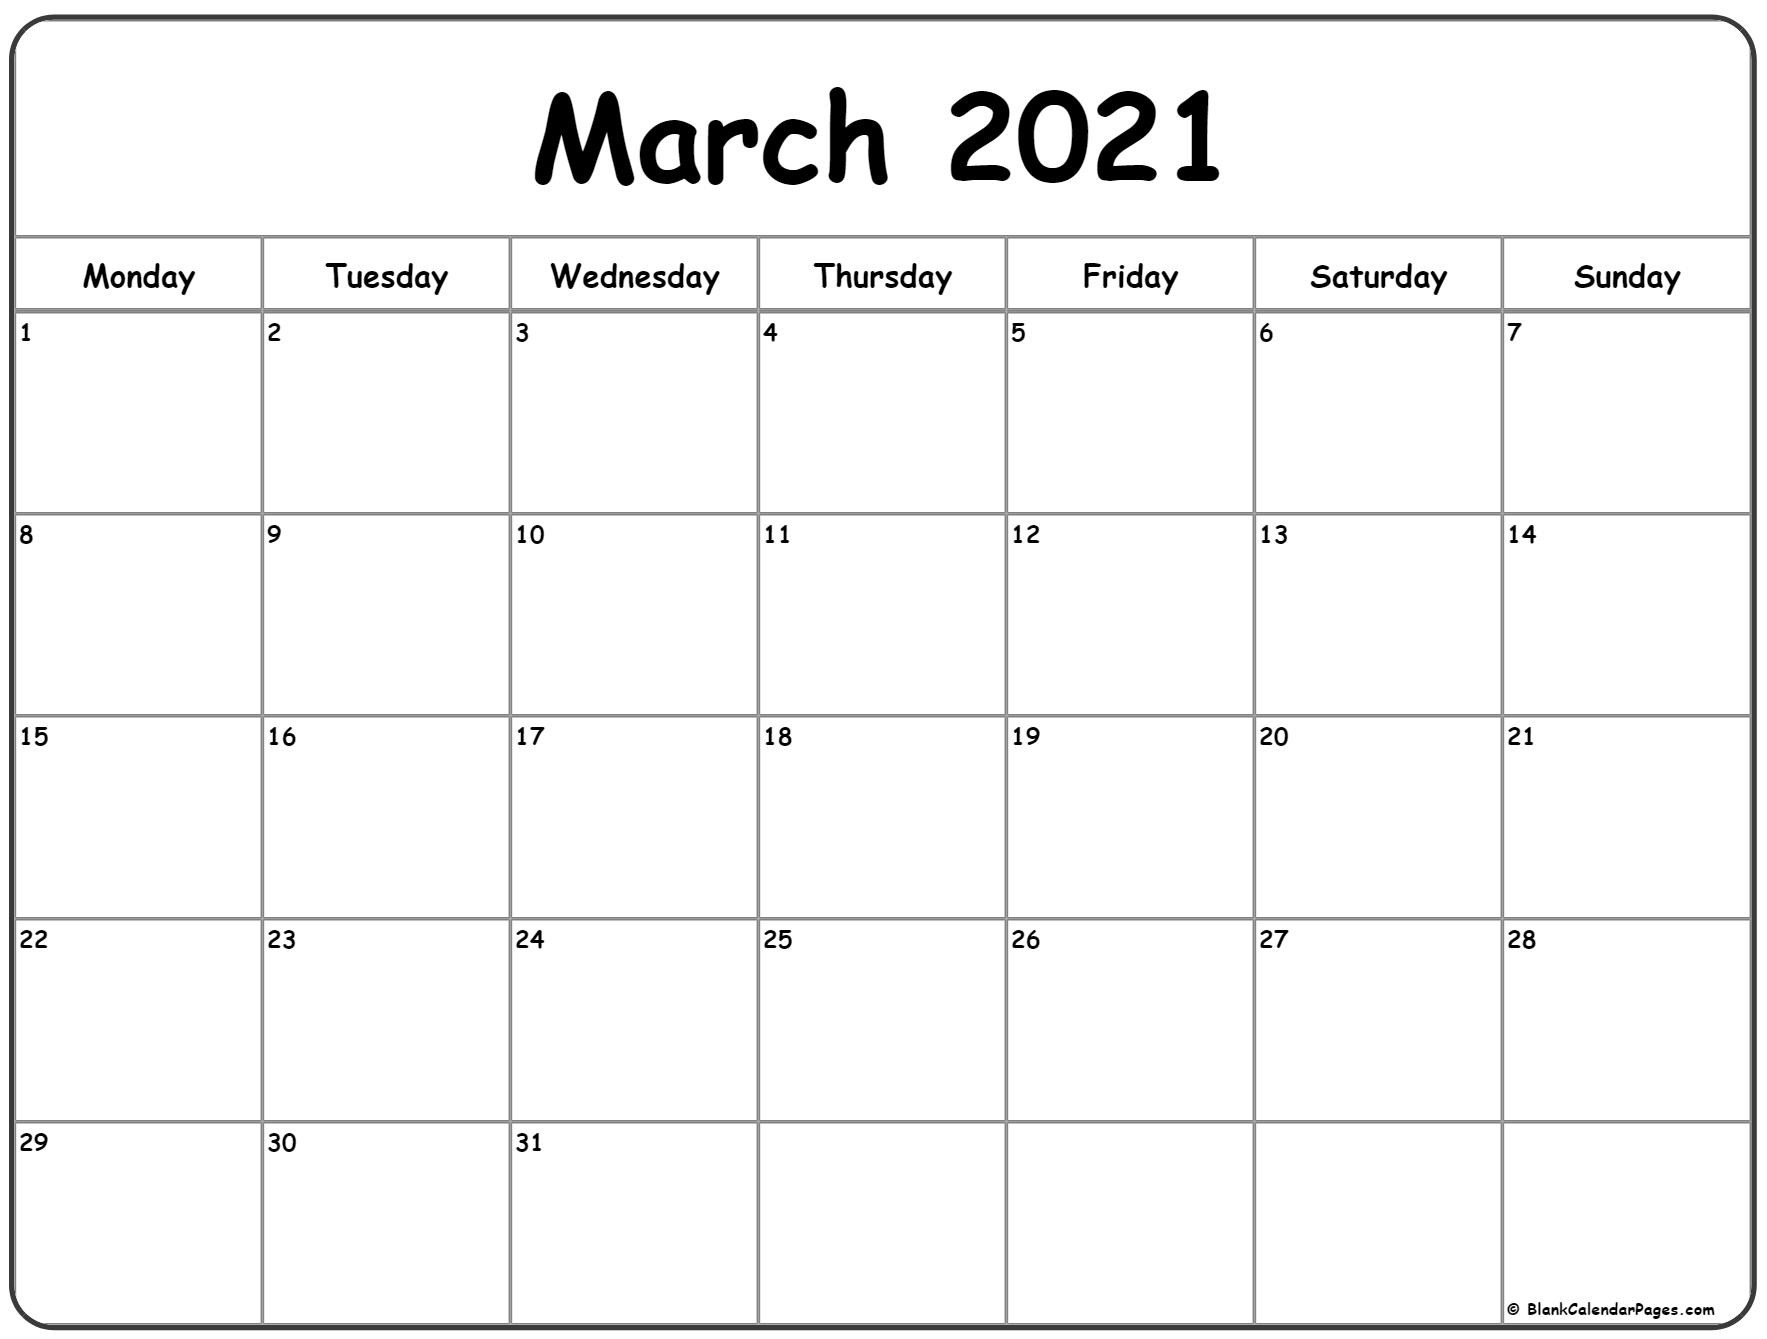 March 2021 Monday Calendar | Monday To Sunday  Free Printable Monthly Calendar March 2021